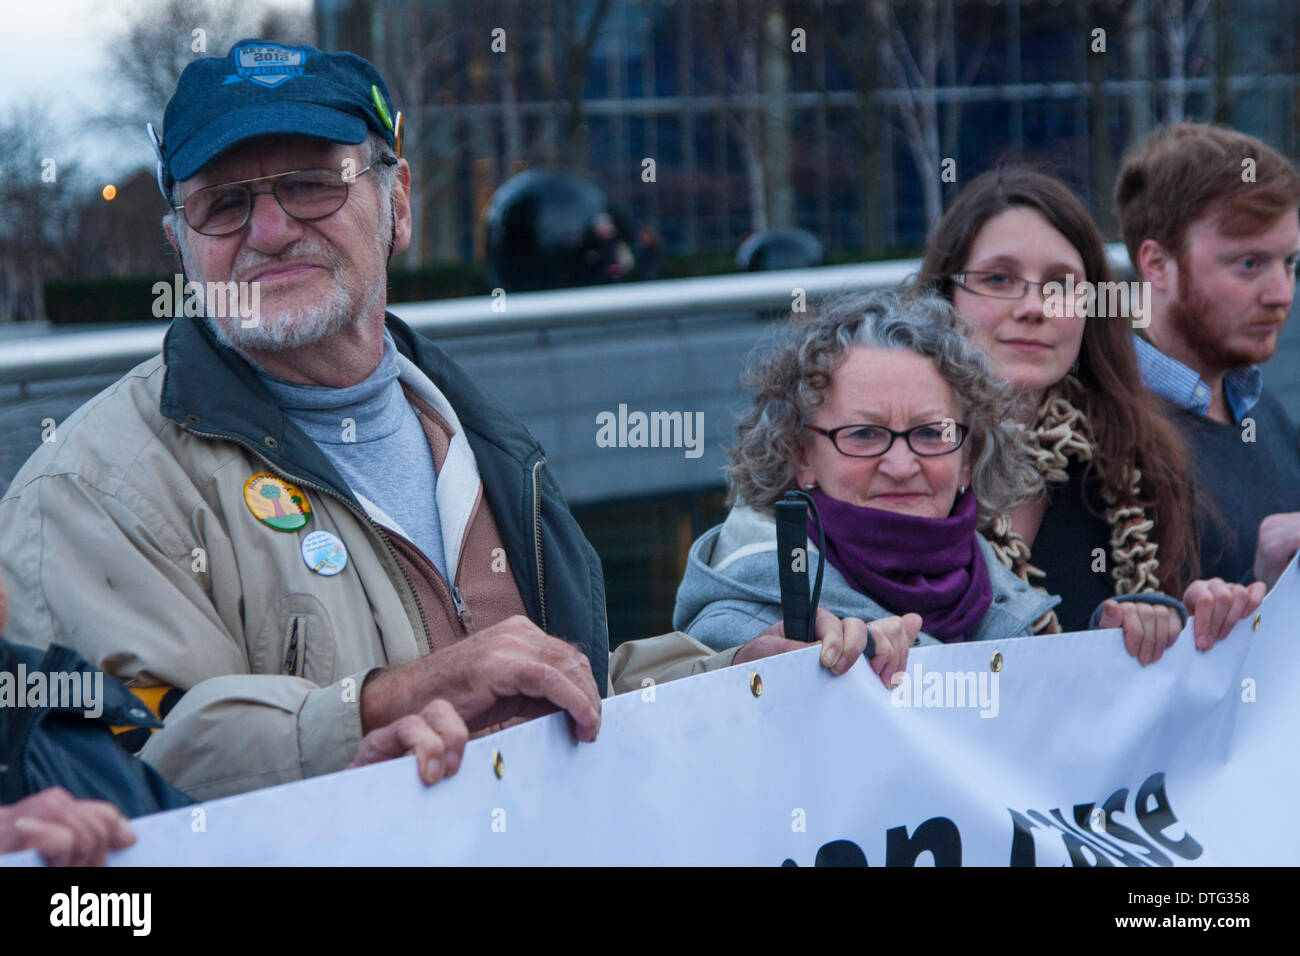 London, UK. 17th Feb 2014. . Dietrich Wagner, left, joined dozens of campaigners to protest against Mayor Boris Johnson's plans to bring in water cannons to subdue street demonstrations. Credit:  Paul Davey/Alamy Live News - Stock Image